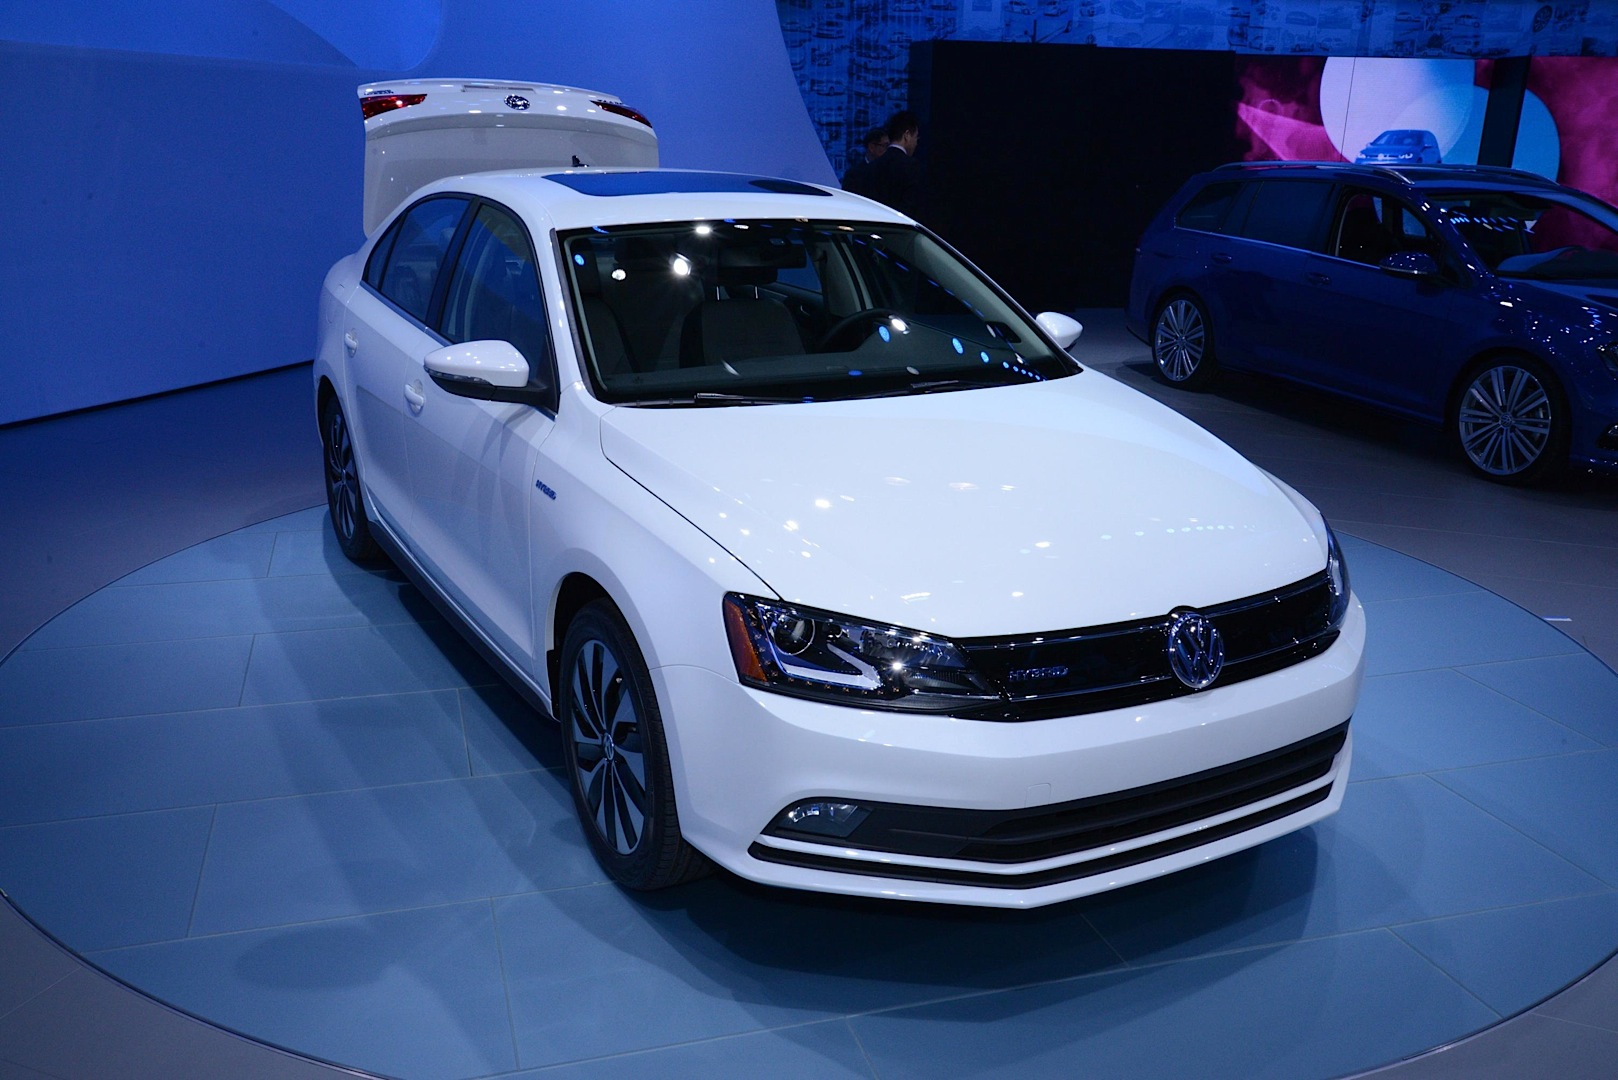 Updates 2015 VW Jetta Joins New Golf GTI and R in New York [Live Photos] - autoevolution